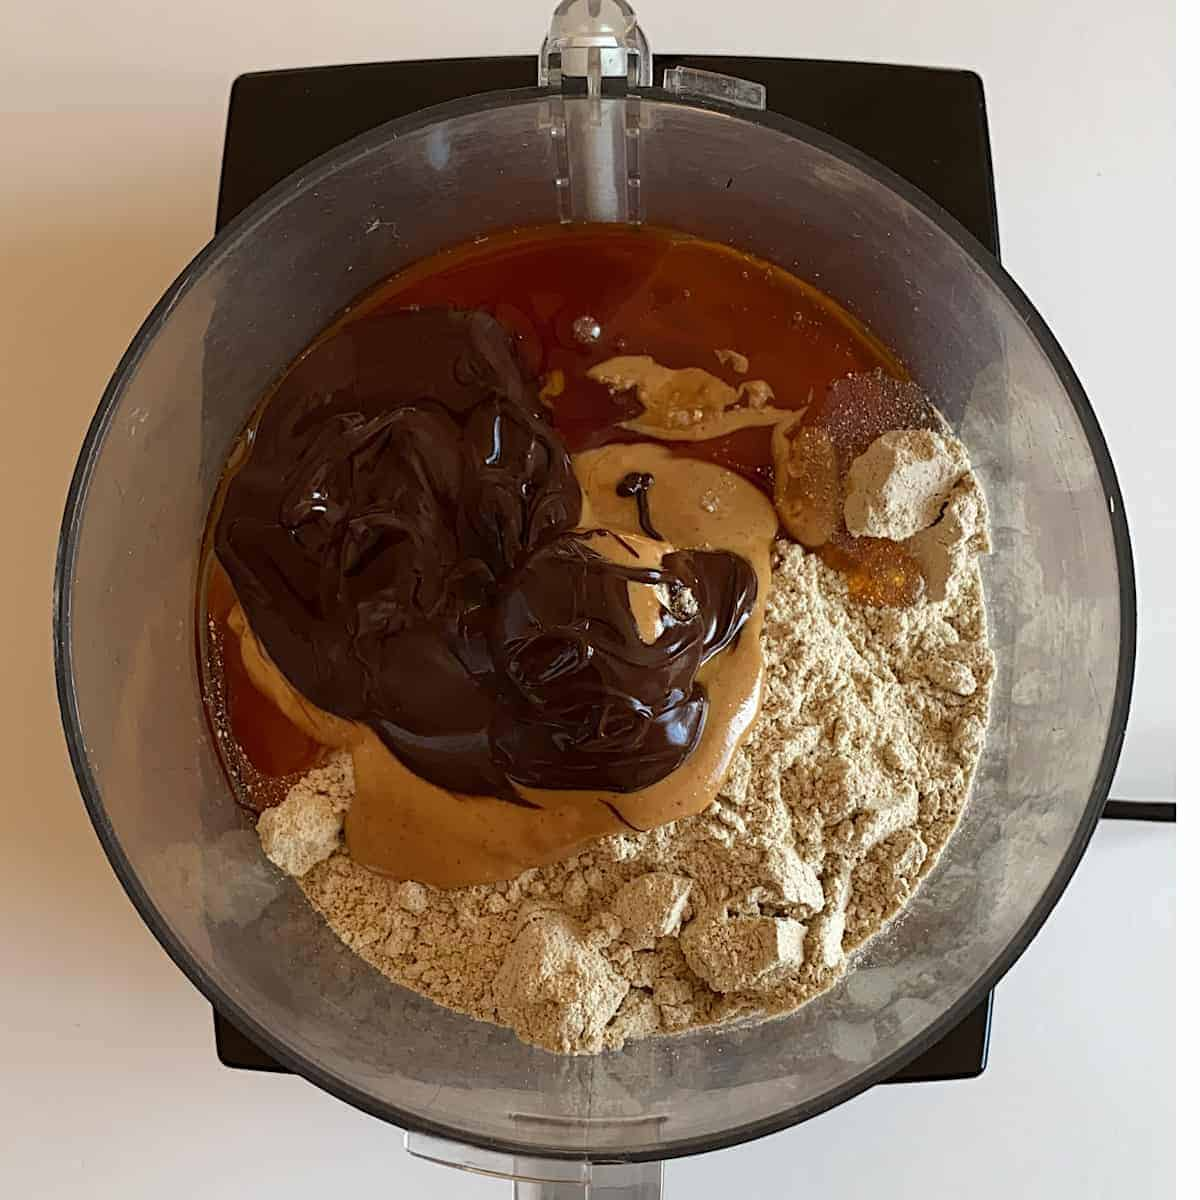 Image of measured Ingredients for Chocolate Peanut Butter Protein Balls in food processor.